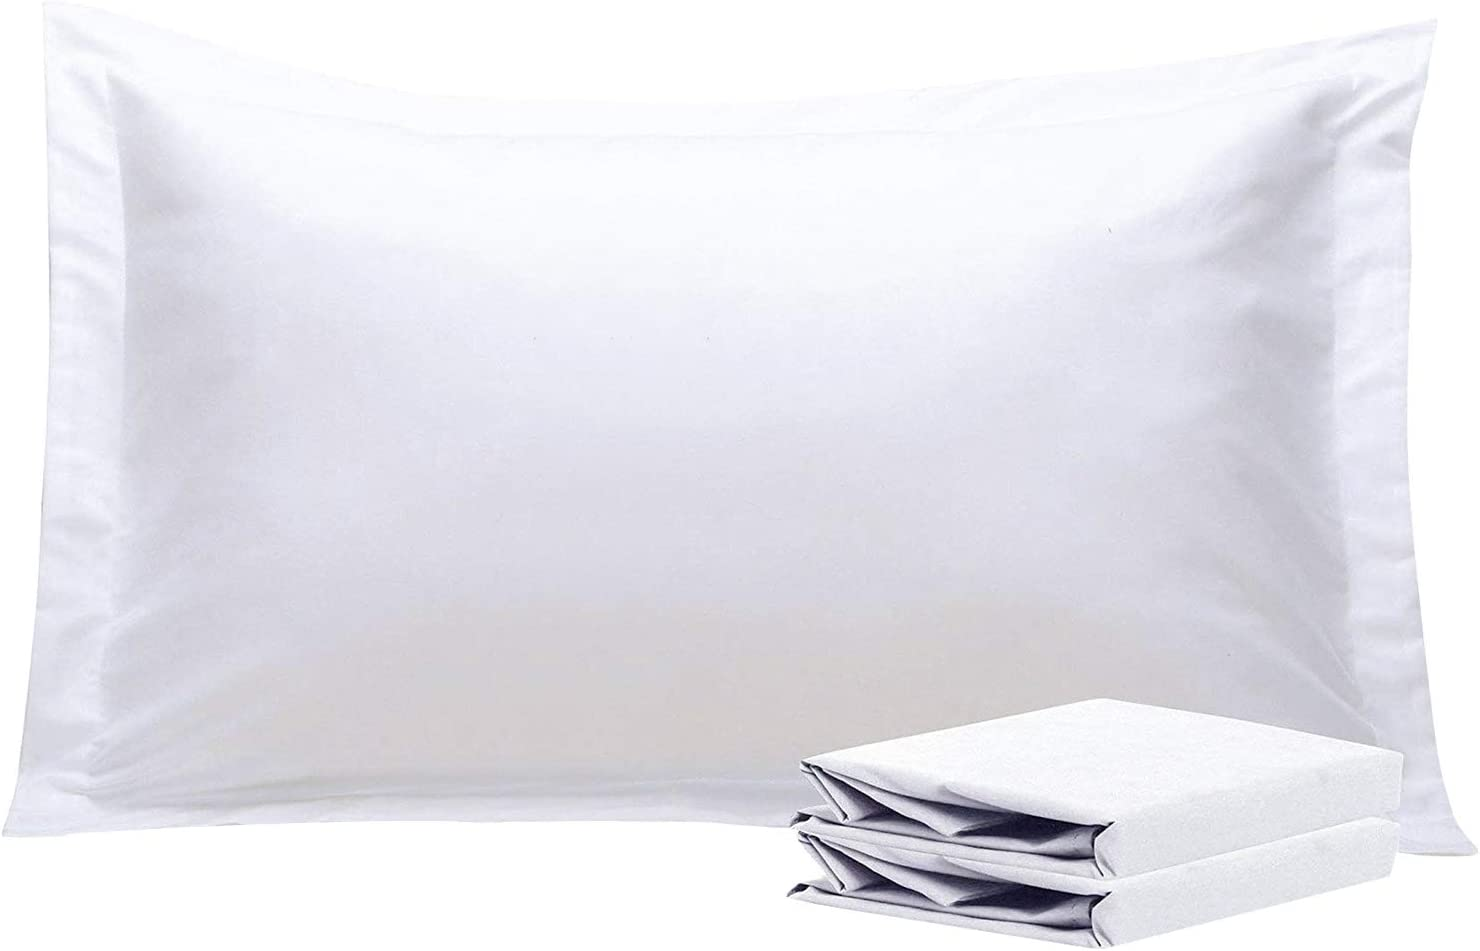 Shop King Pillow Shams, Set of 2, 100% Brushed Microfiber from Amazon on Openhaus